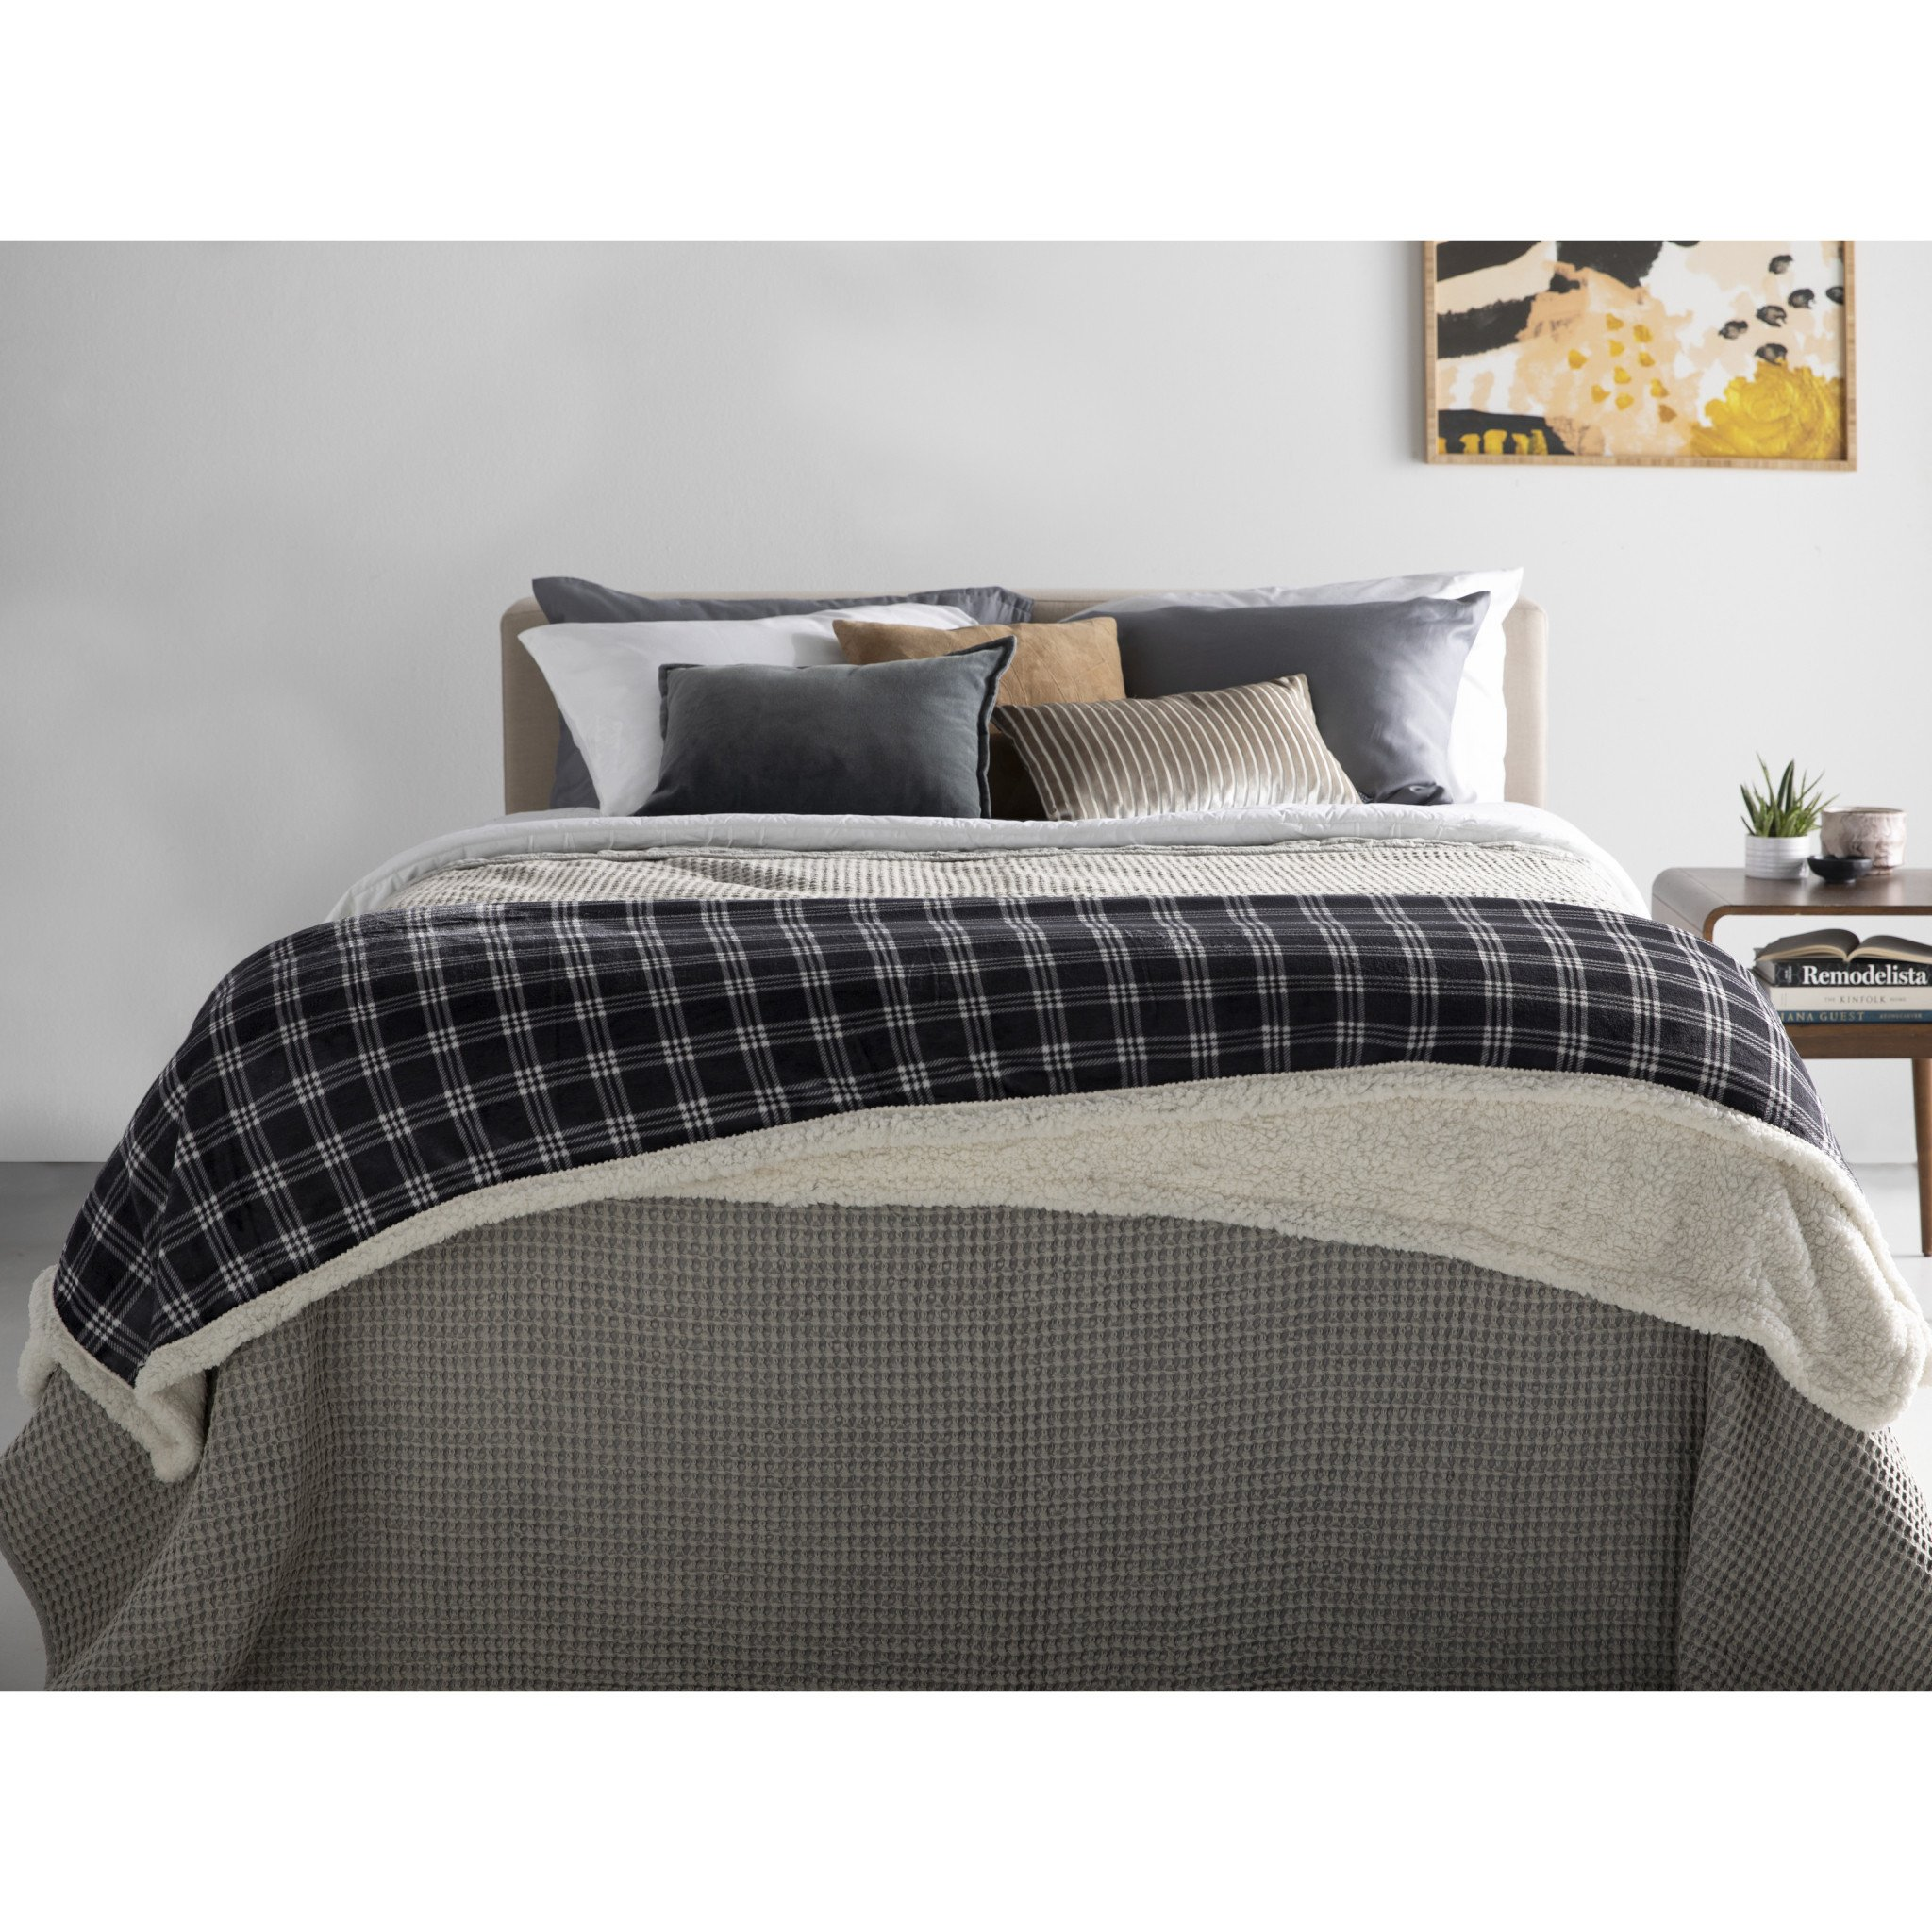 Wal Mart Bedroom Furniture Beautiful Newport nordic soft Sherpa Bed Blanket 1 Each Walmart